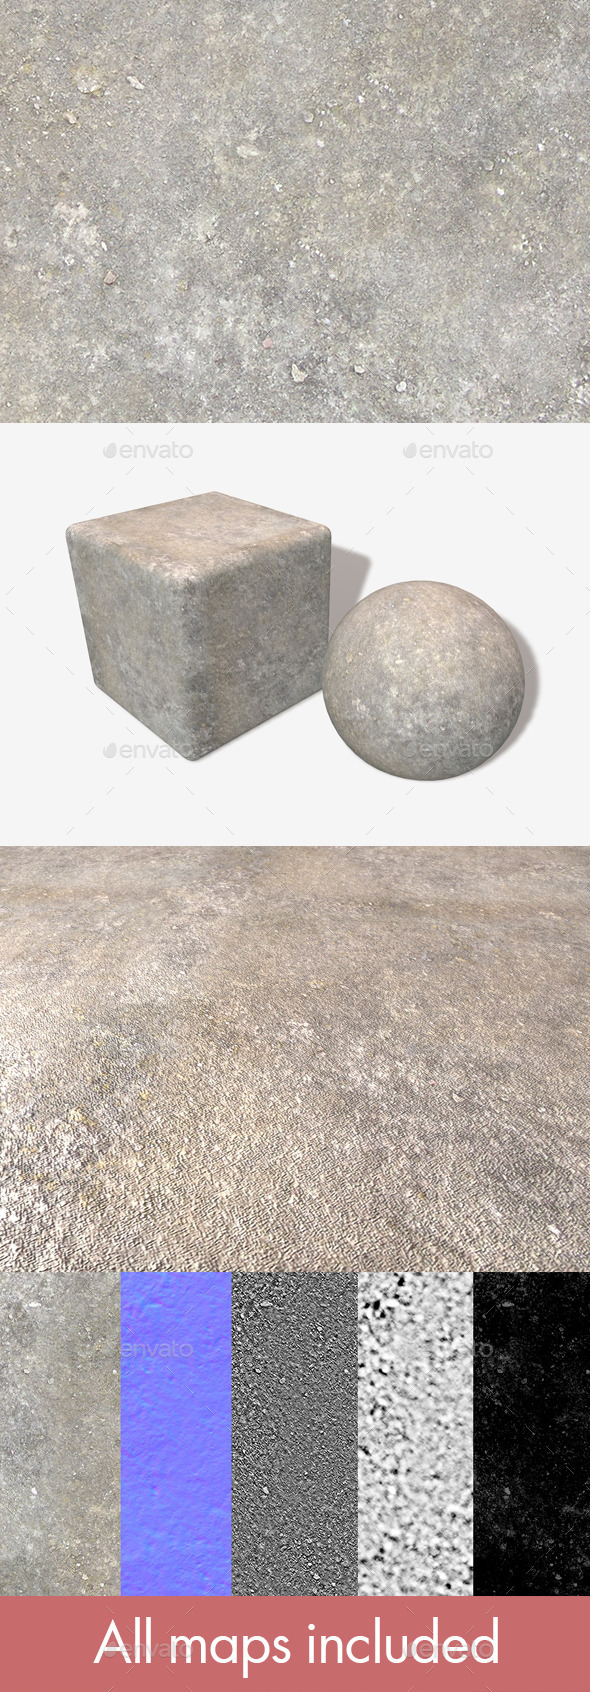 Concrete Seamless Texture - 3DOcean Item for Sale